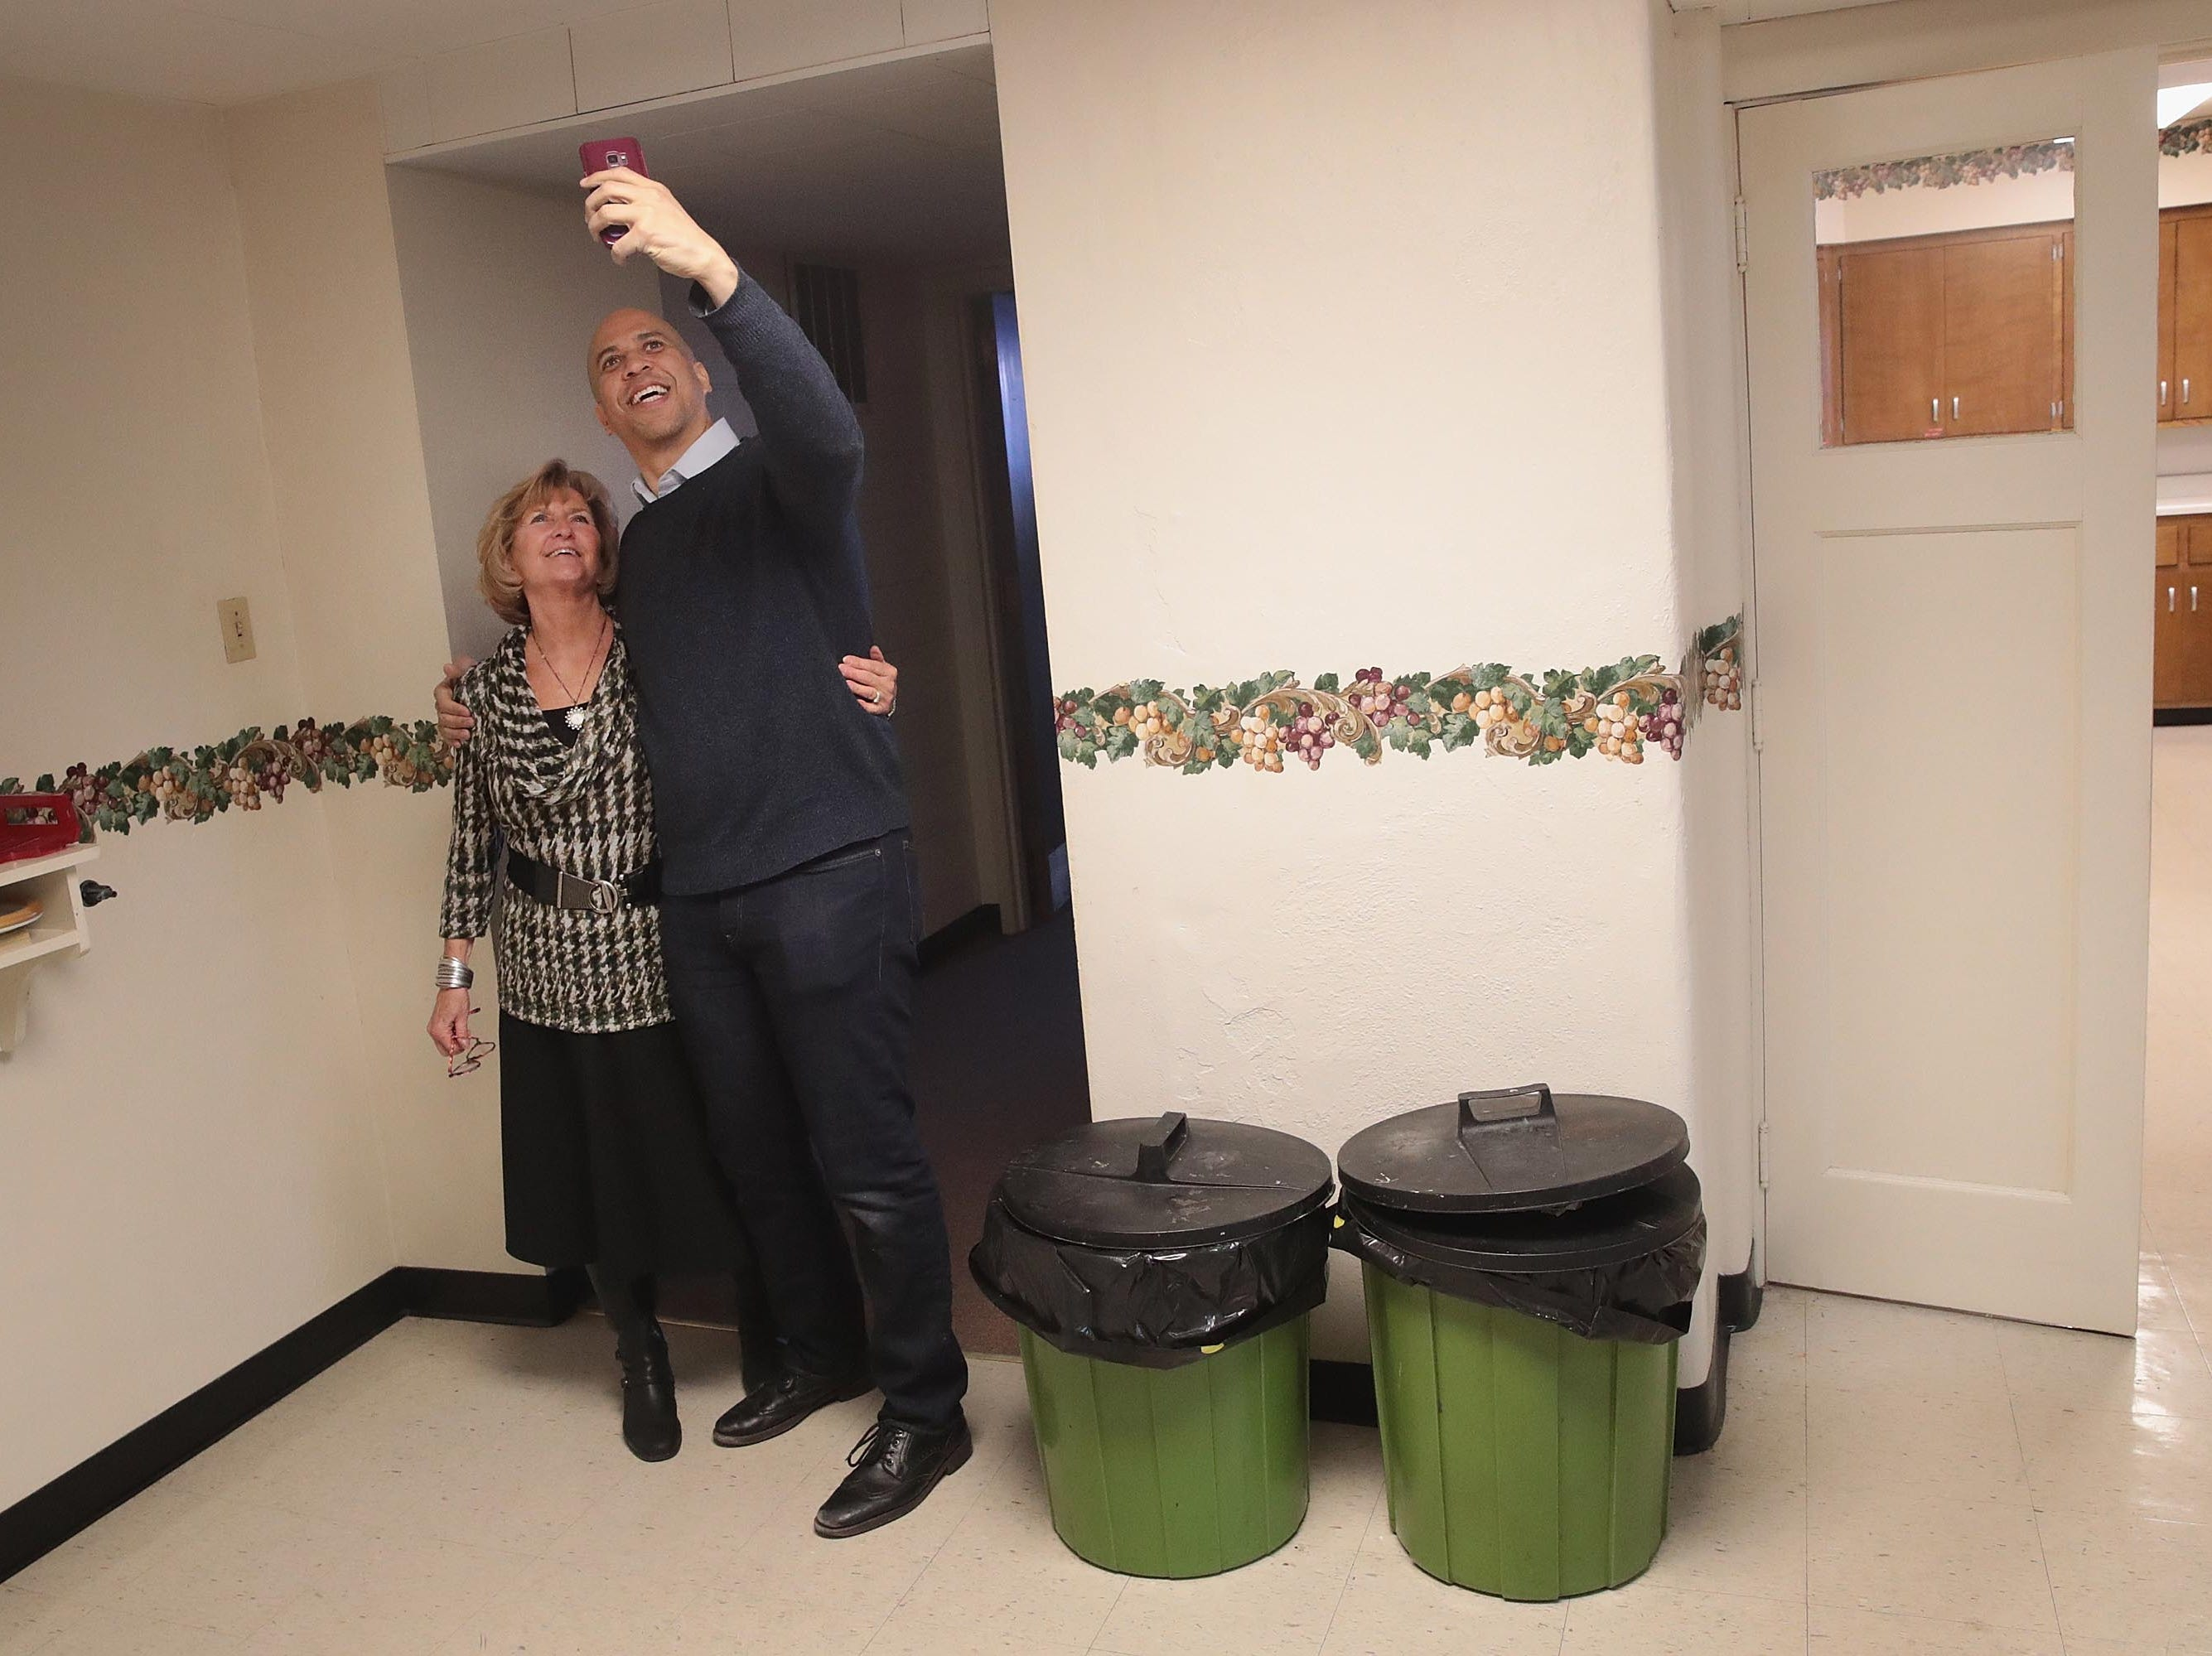 MASON CITY, IOWA - FEBRUARY 08: U.S. Senator Cory Booker (D-NJ) takes a selfie with Iowa State Representative Sharon Steckman during a campaign event in the basement at the First Congressional United Church of Christ on February 08, 2019 in Mason City, Iowa.  Booker, whose has family from Iowa, is in the state campaigning for the 2020 Democratic nomination for president. (Photo by Scott Olson/Getty Images)